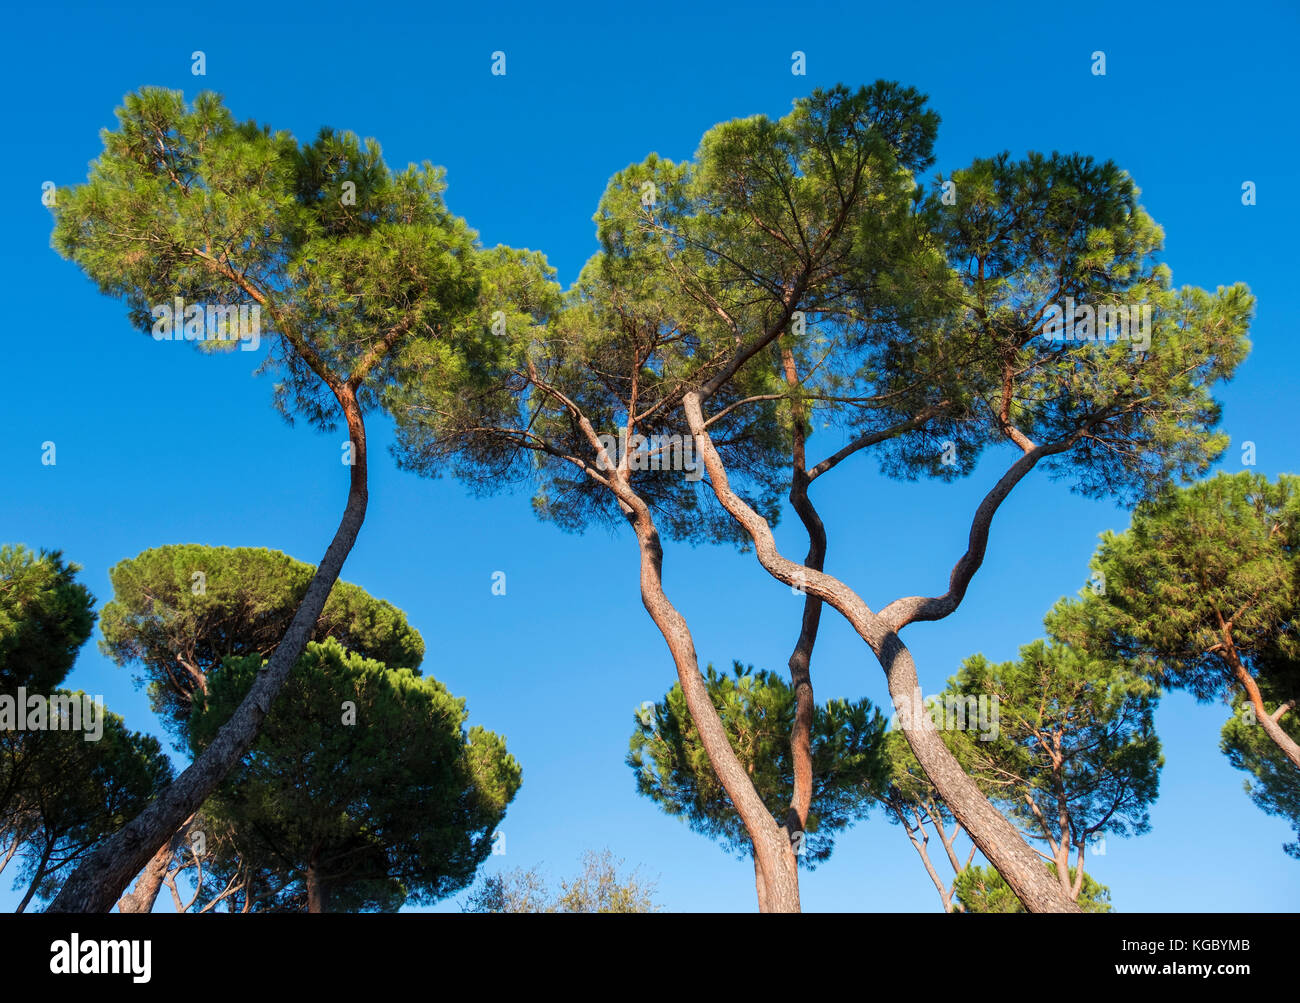 villa borghese pine trees stockfotos villa borghese pine trees bilder alamy. Black Bedroom Furniture Sets. Home Design Ideas